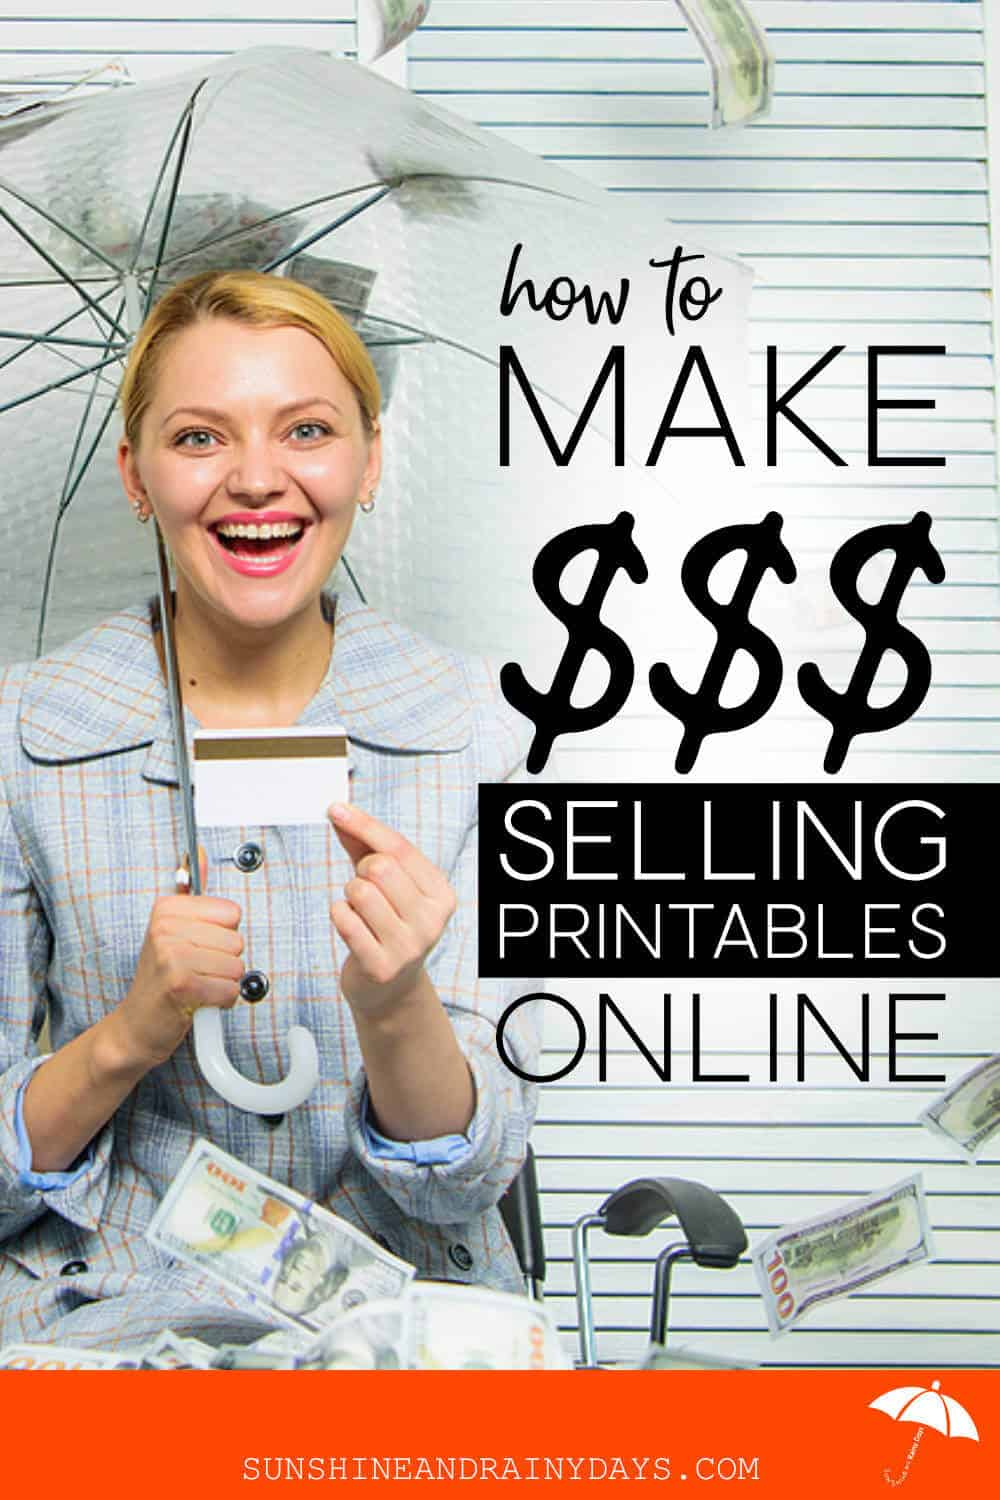 Lady with umbrella and money raining down on her with the words: How To Make Money Selling Printables Online